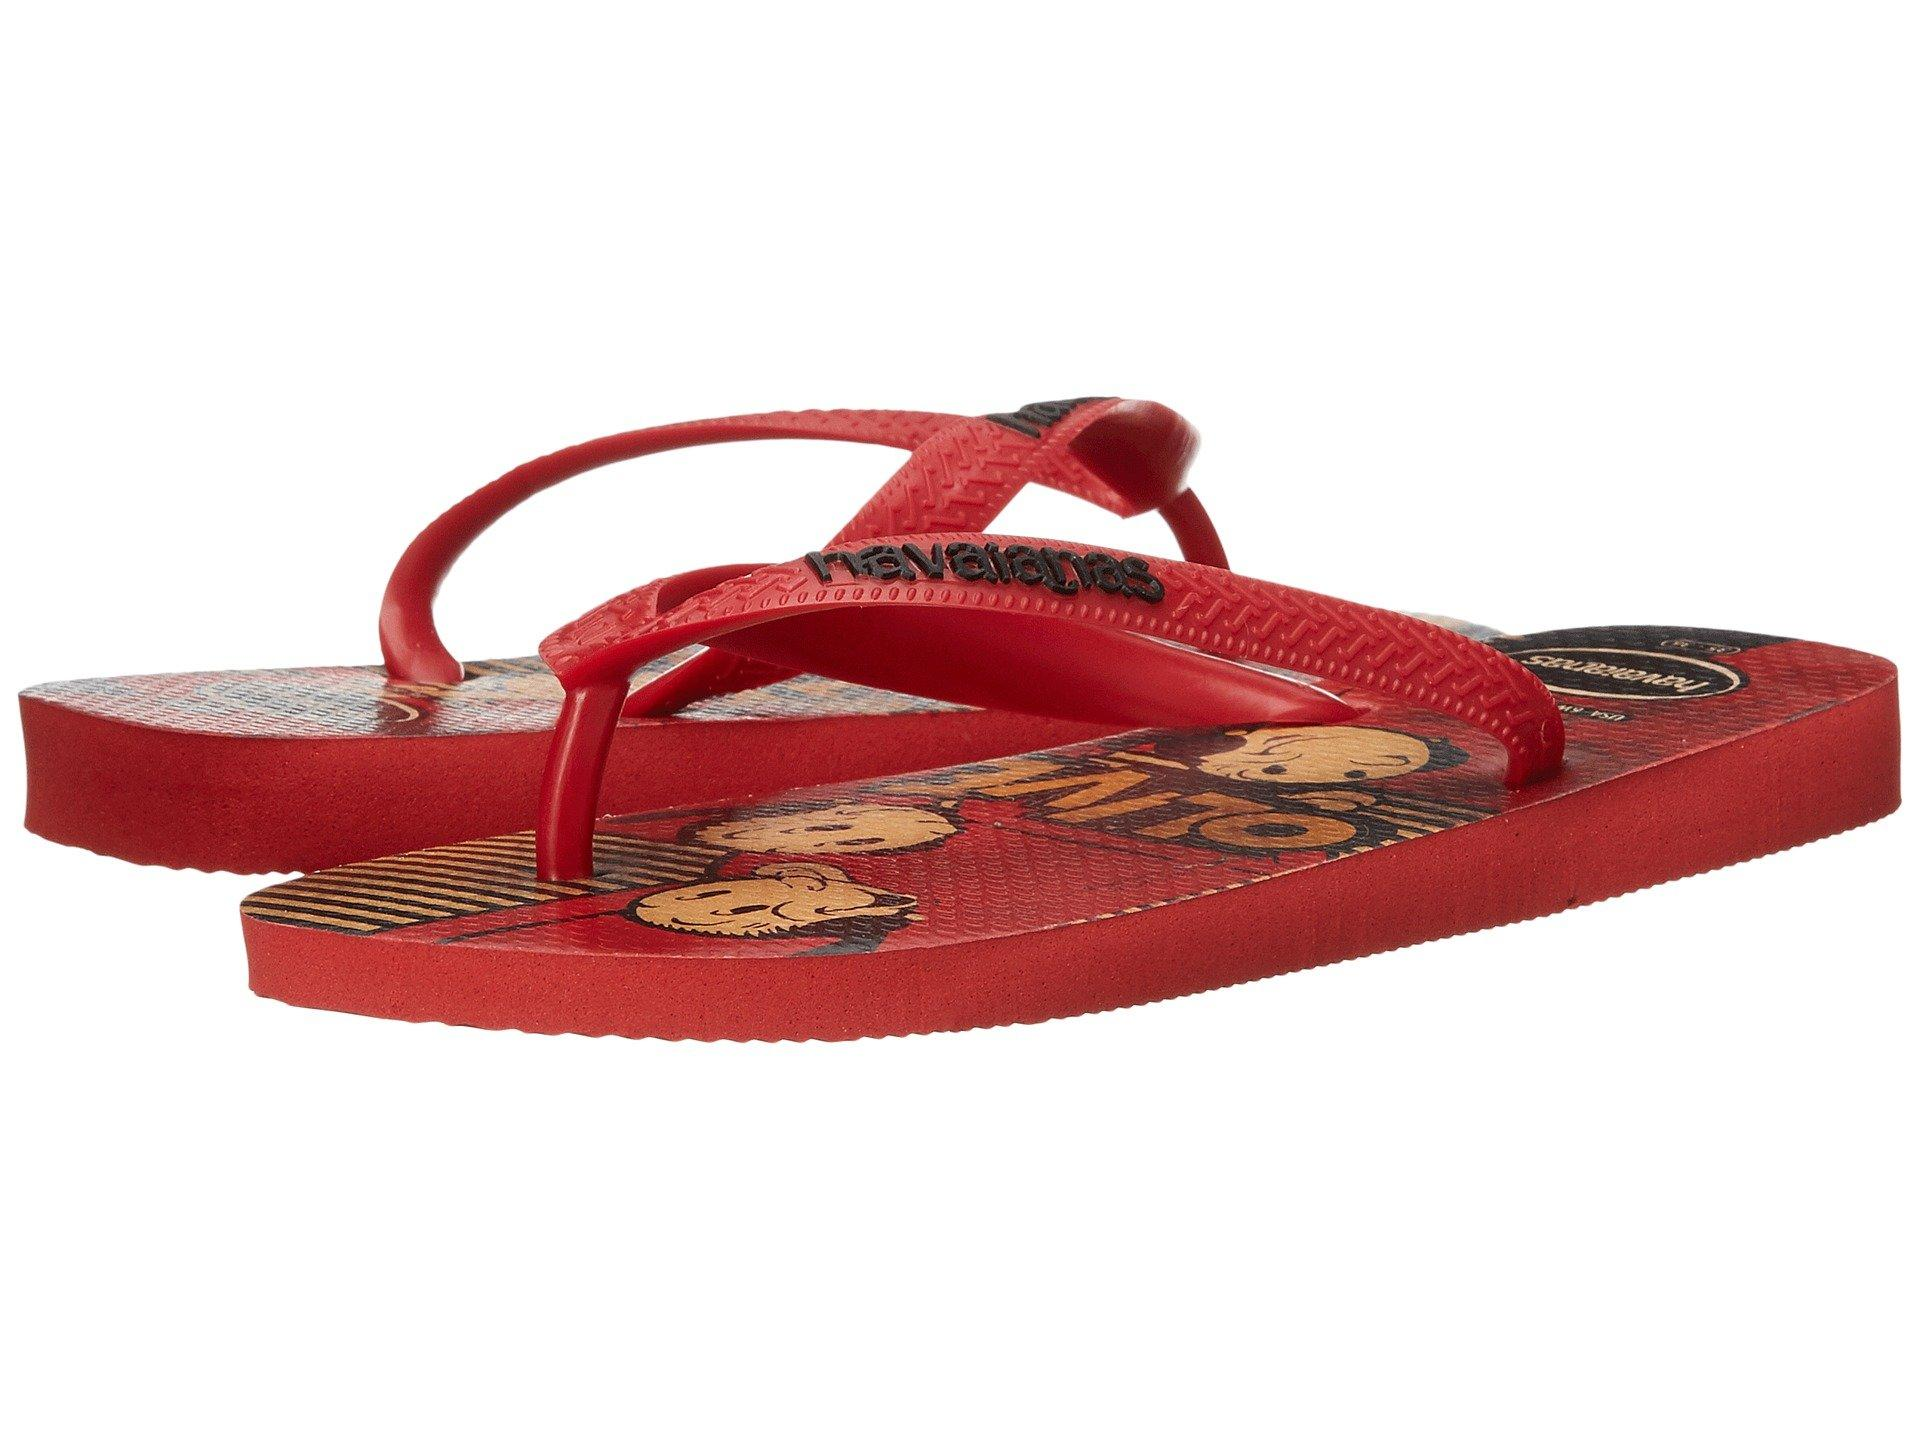 9a2aa6ac8850 Cushioned footbed features Popeye and Olive Oyl graphic print with textured  rice pattern. Flexible rubber sole. Made in Brazil.